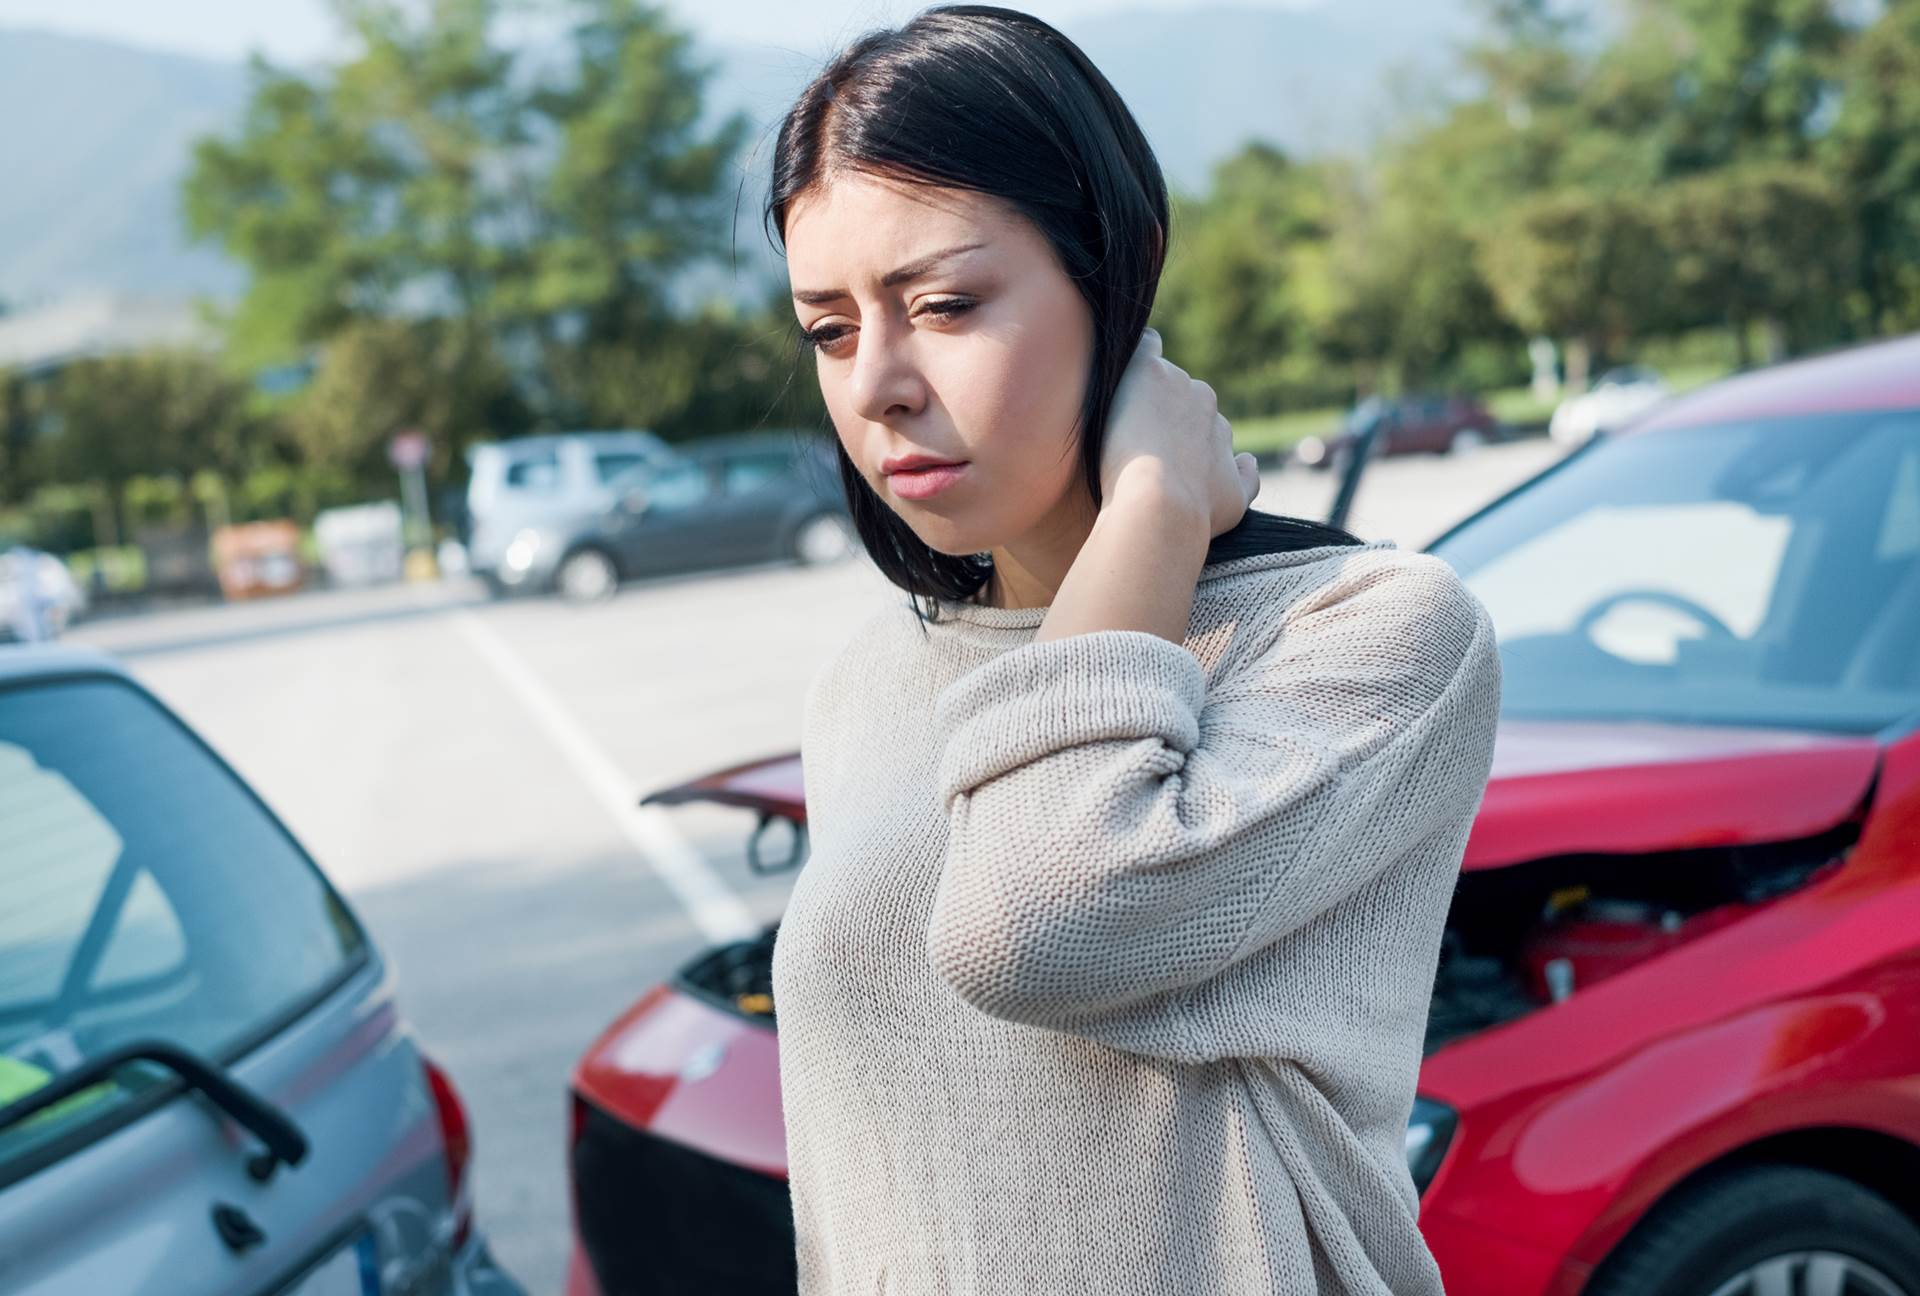 What to do if you are a passenger in a car accident